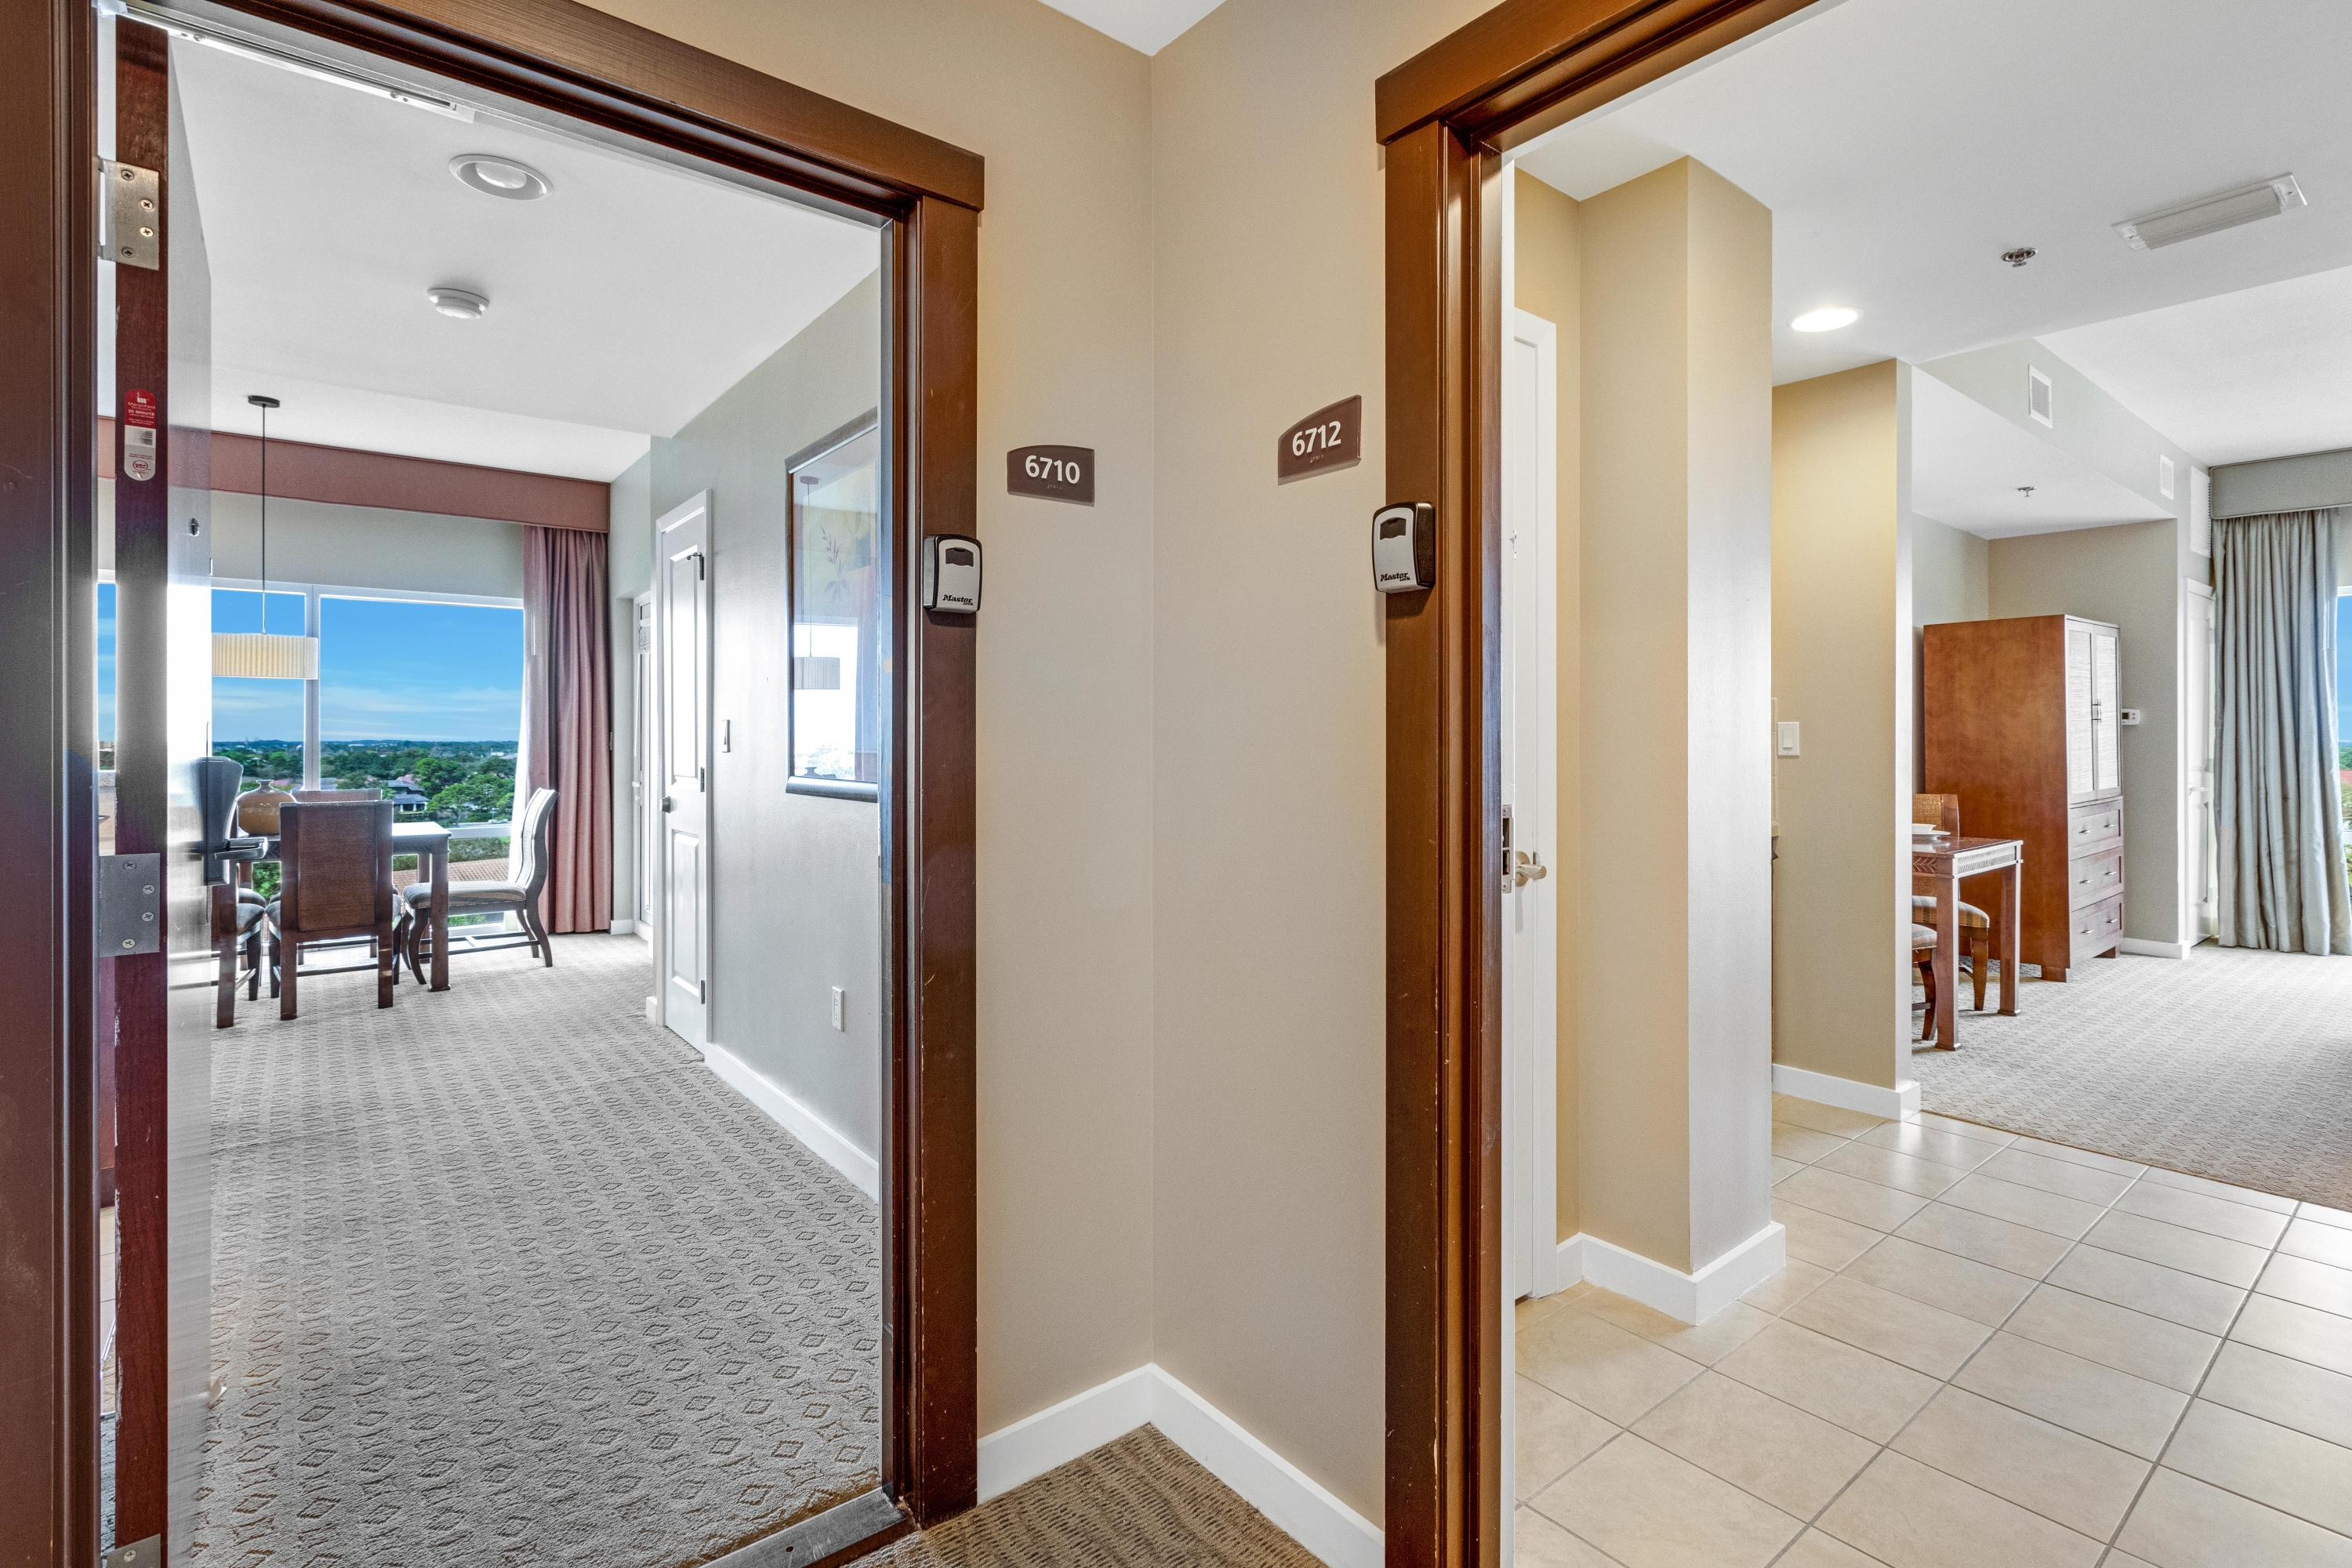 Breathtaking views in this prime West facing condo situated on the 7th floor. Imagine each day sitti